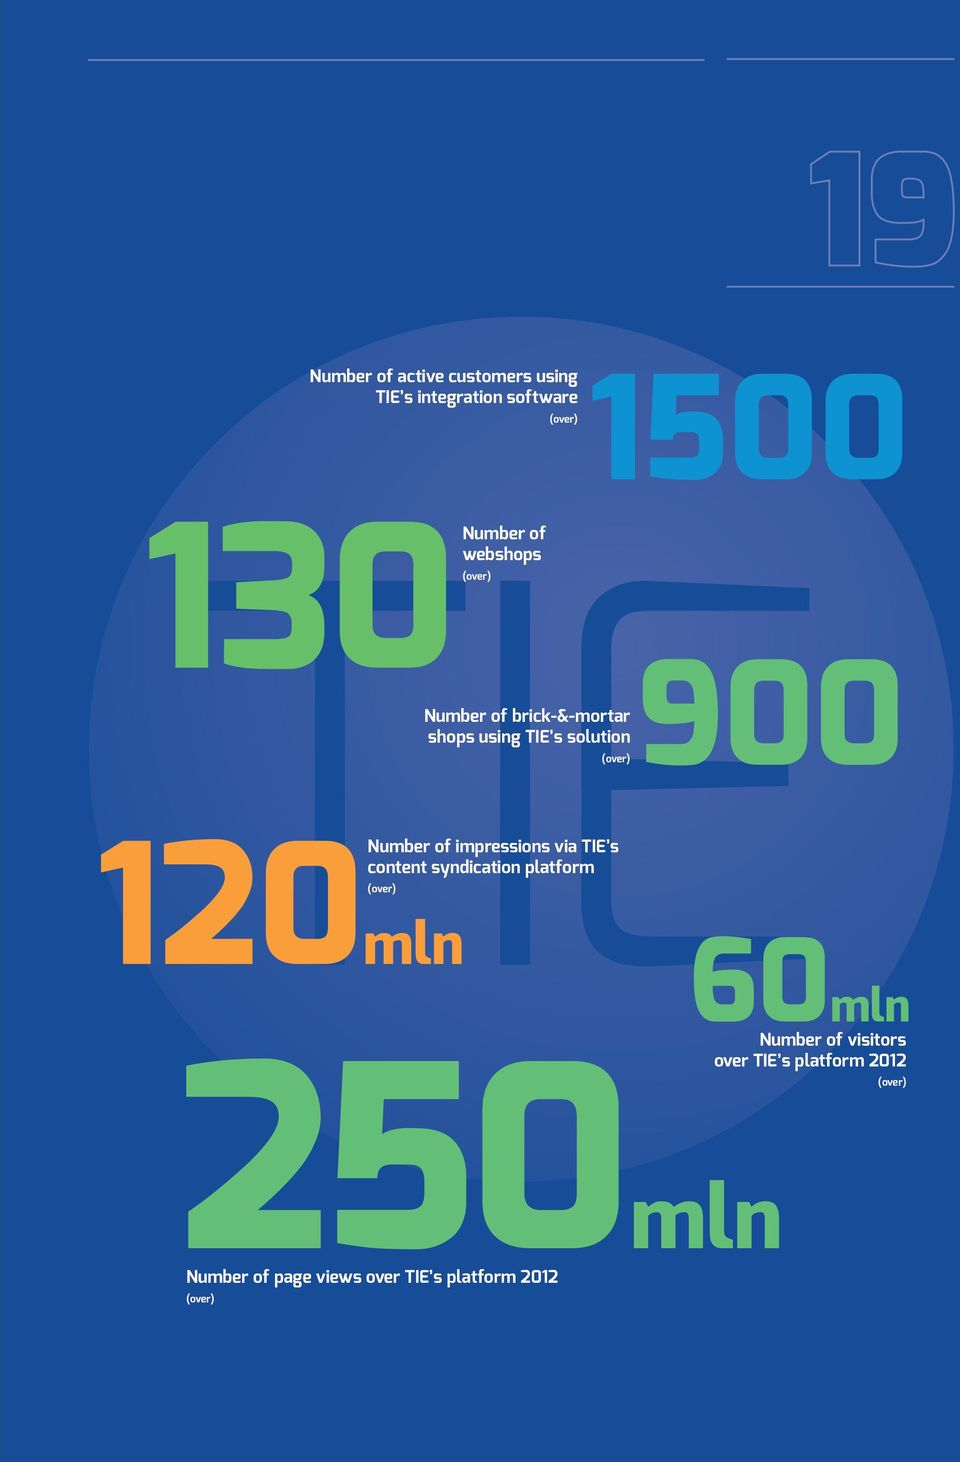 content syndication platform (over) 120mln 60mln Number of visitors over TIE s platform 2012 (over)